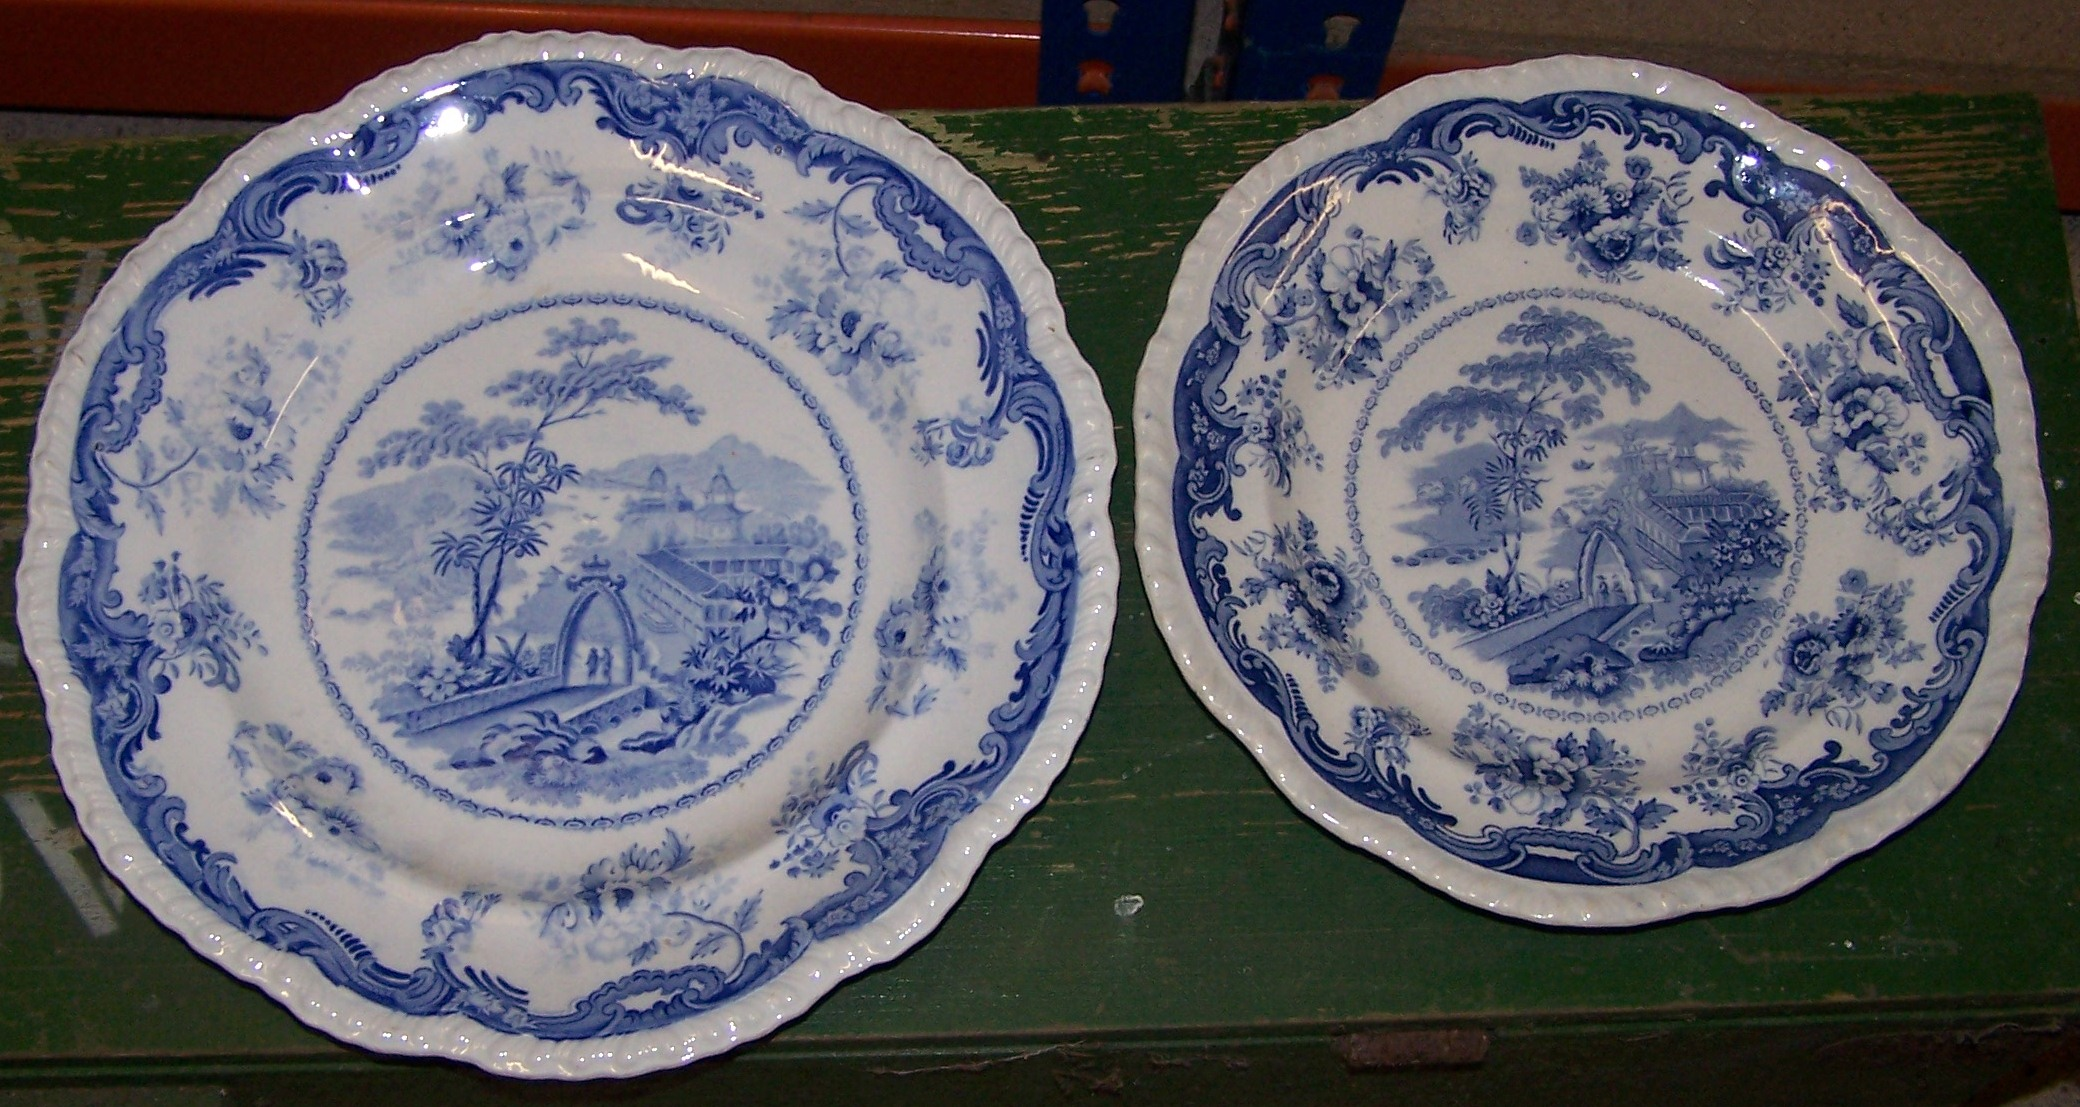 Lot 27 - A 19th Century Hull Bellevue pottery Plate printed in blue and white with & A 19th Century Hull Bellevue pottery Plate printed in blue and white ...